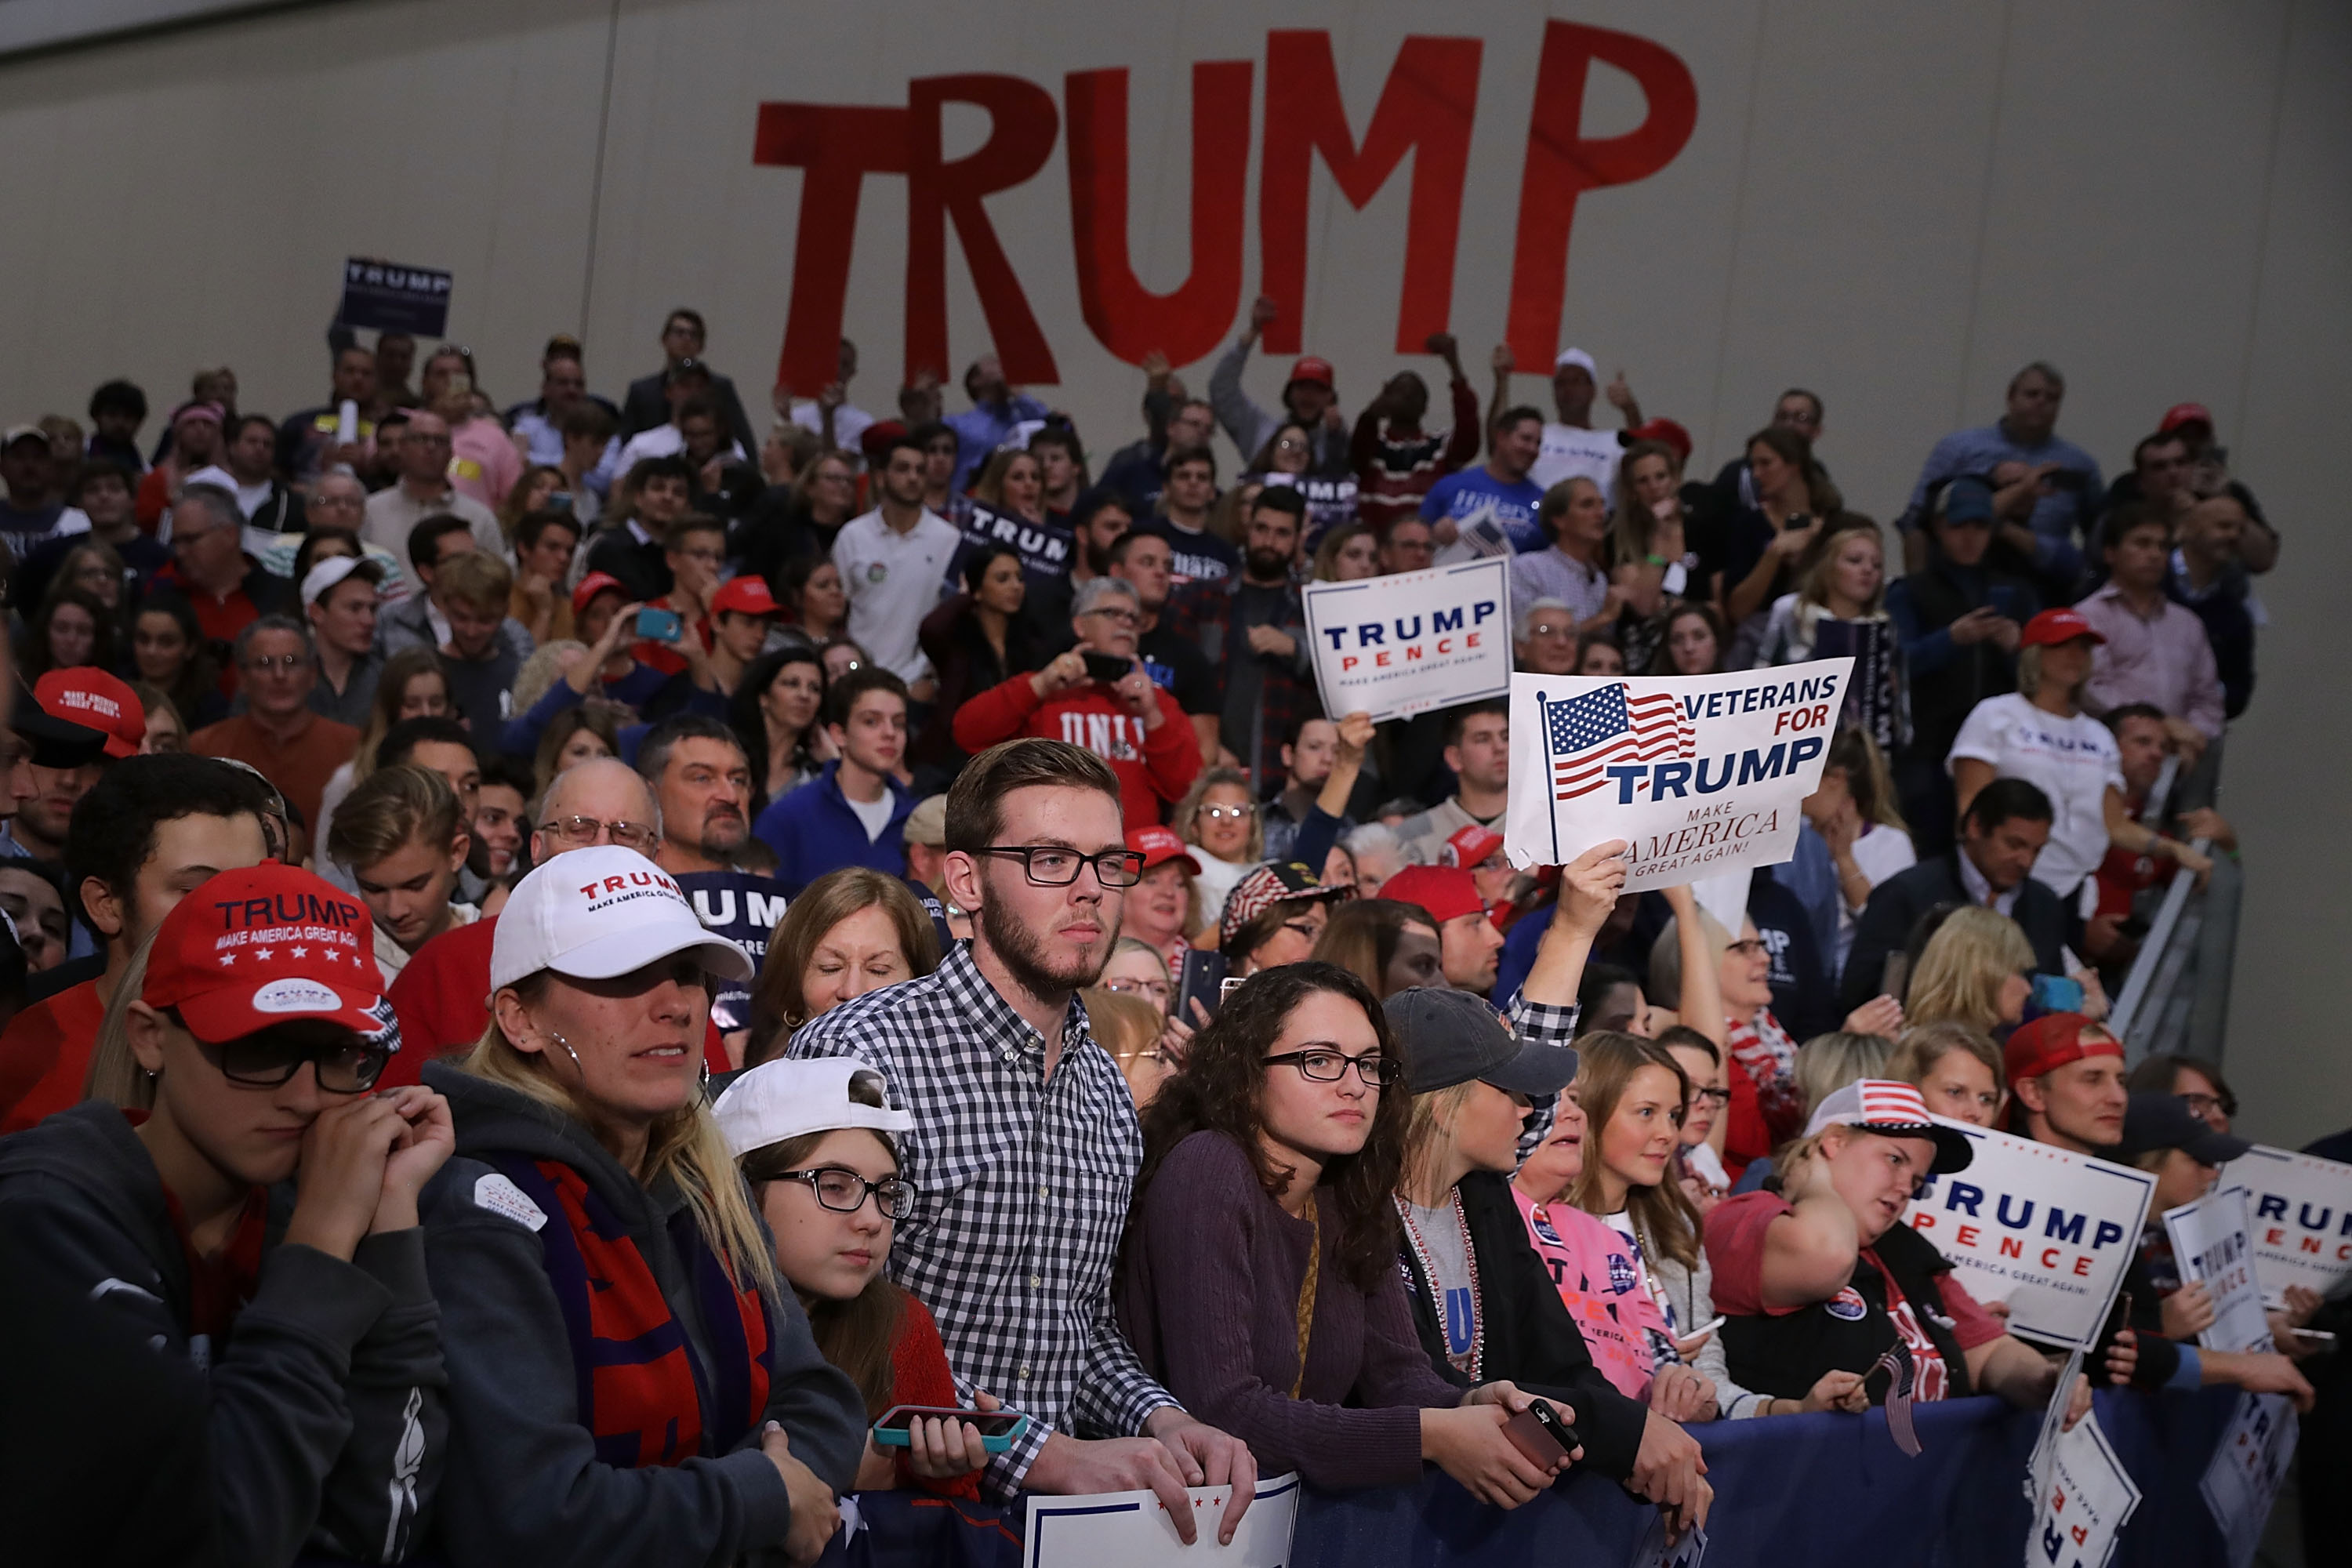 Donald Trump supporters in Grand Rapids, Mich. just before election day last year